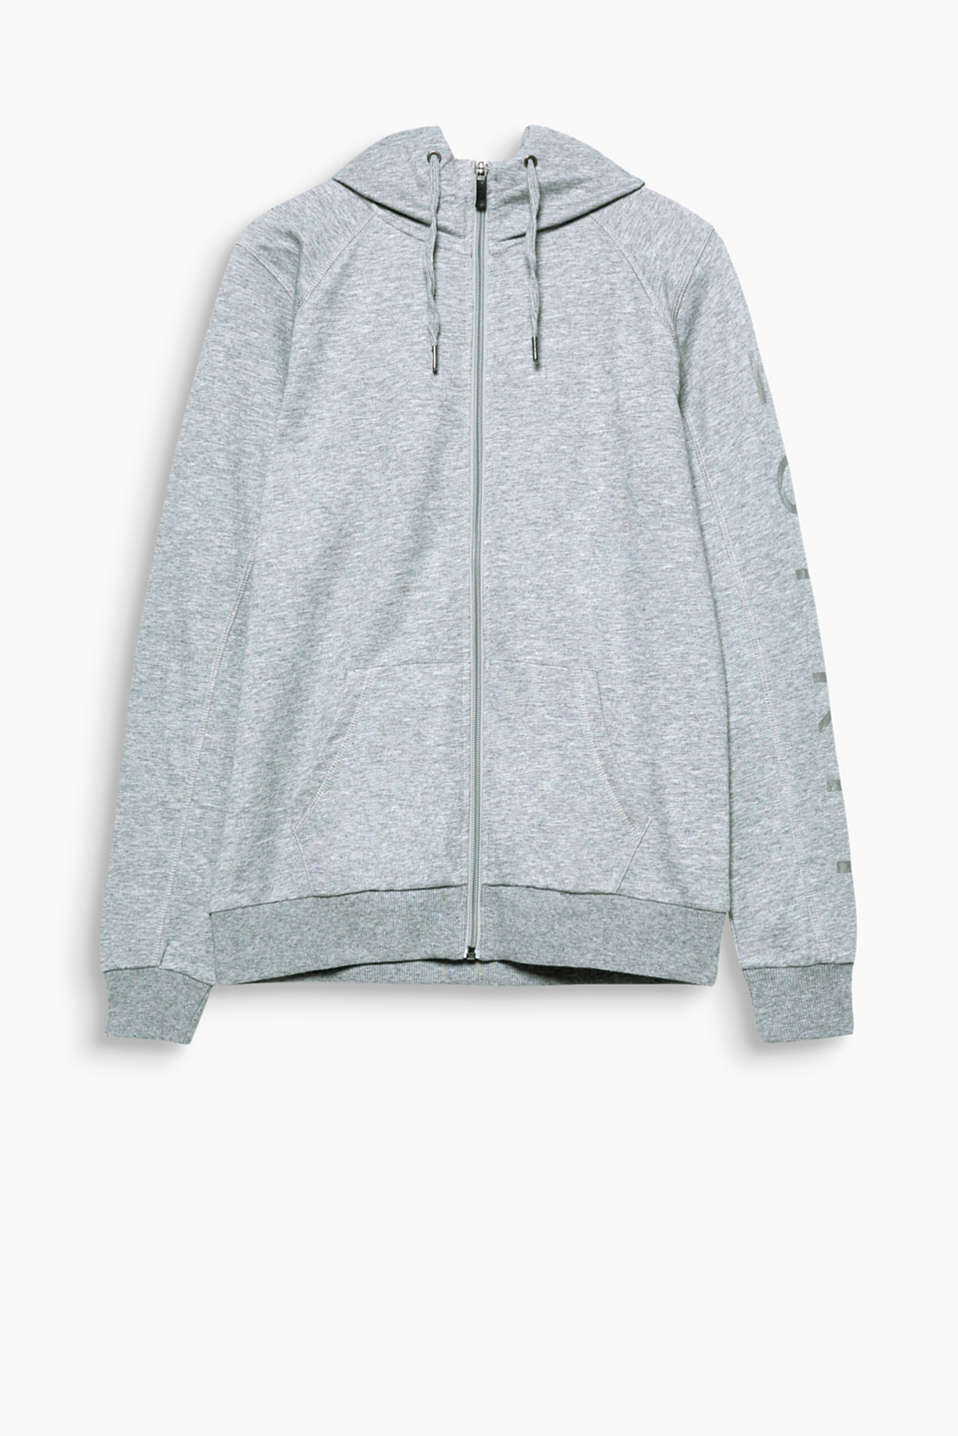 Lightweight sweatshirt cardigan in blended cotton with a tonal logo on the sleeve